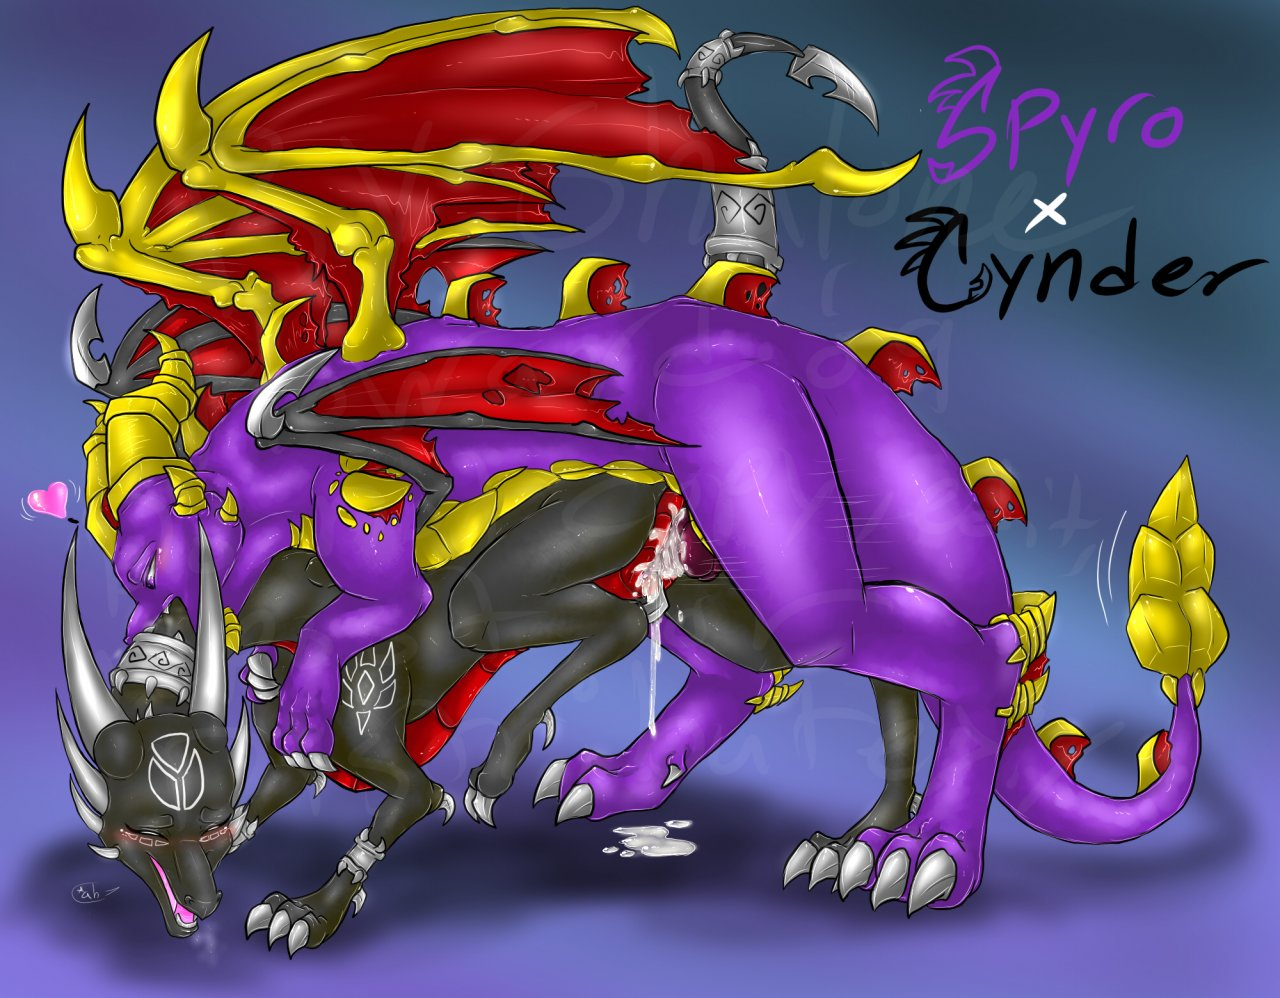 mating and herpy cynder spyro Fate stay night male saber